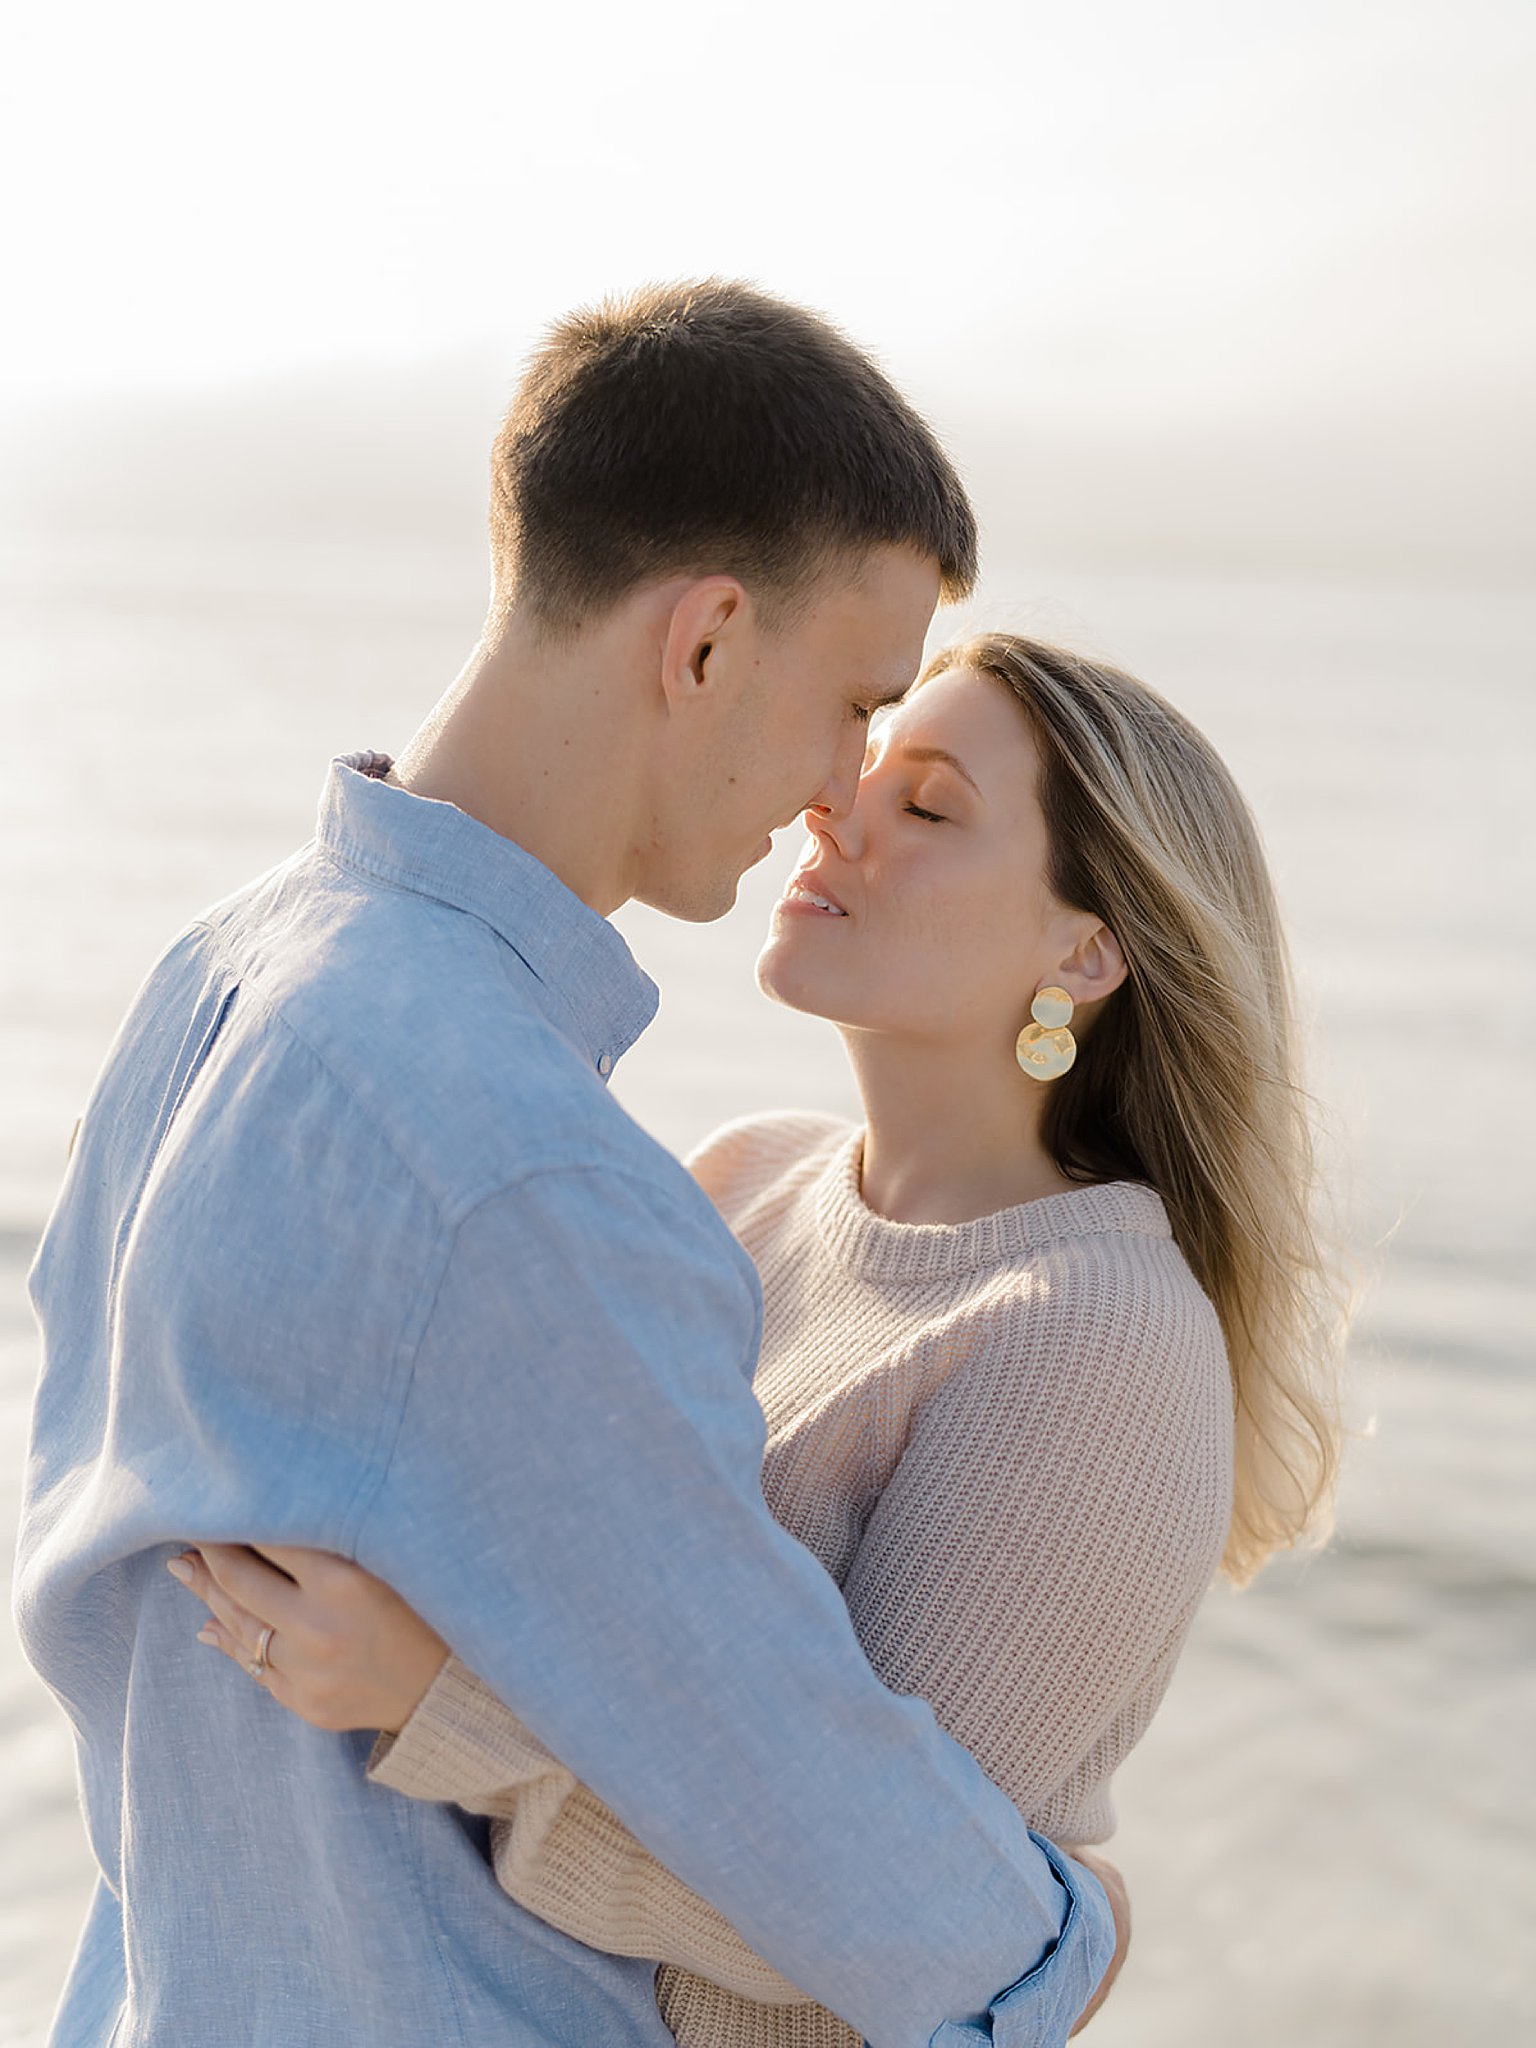 Ocean City New Jersey Engagement Session Photography by Magdalena Studios KateBrad 0043 1